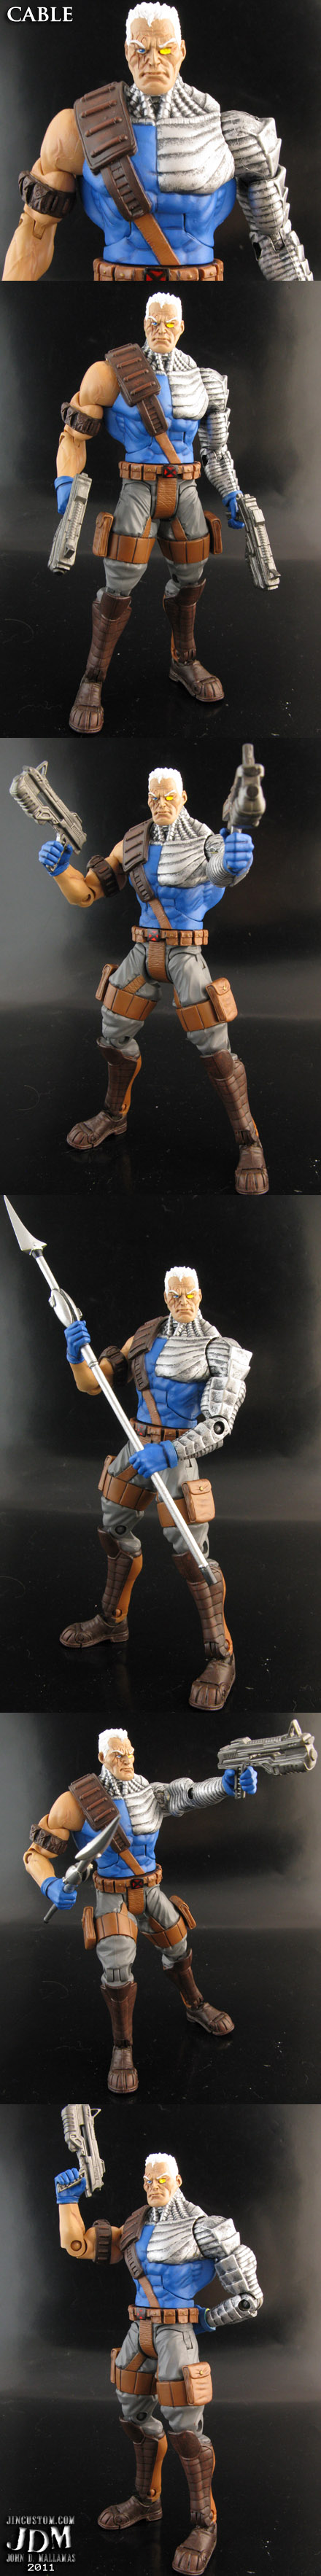 DC Universe style Cable by Jin-Saotome